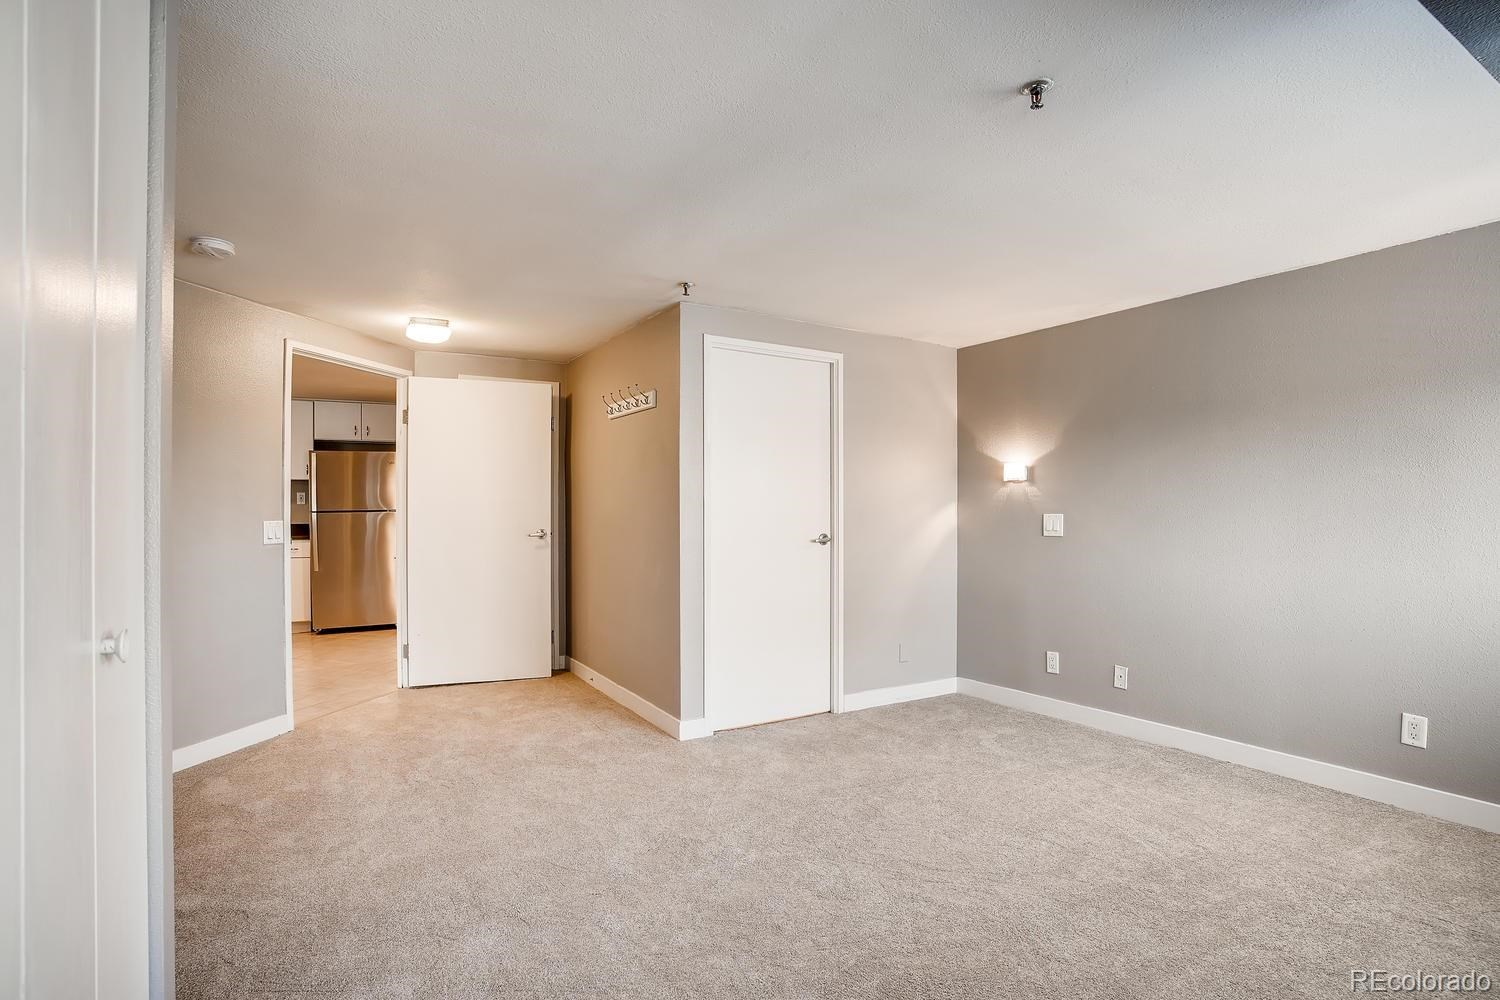 MLS# 3388560 - 9 - 100 Park Avenue #204, Denver, CO 80205